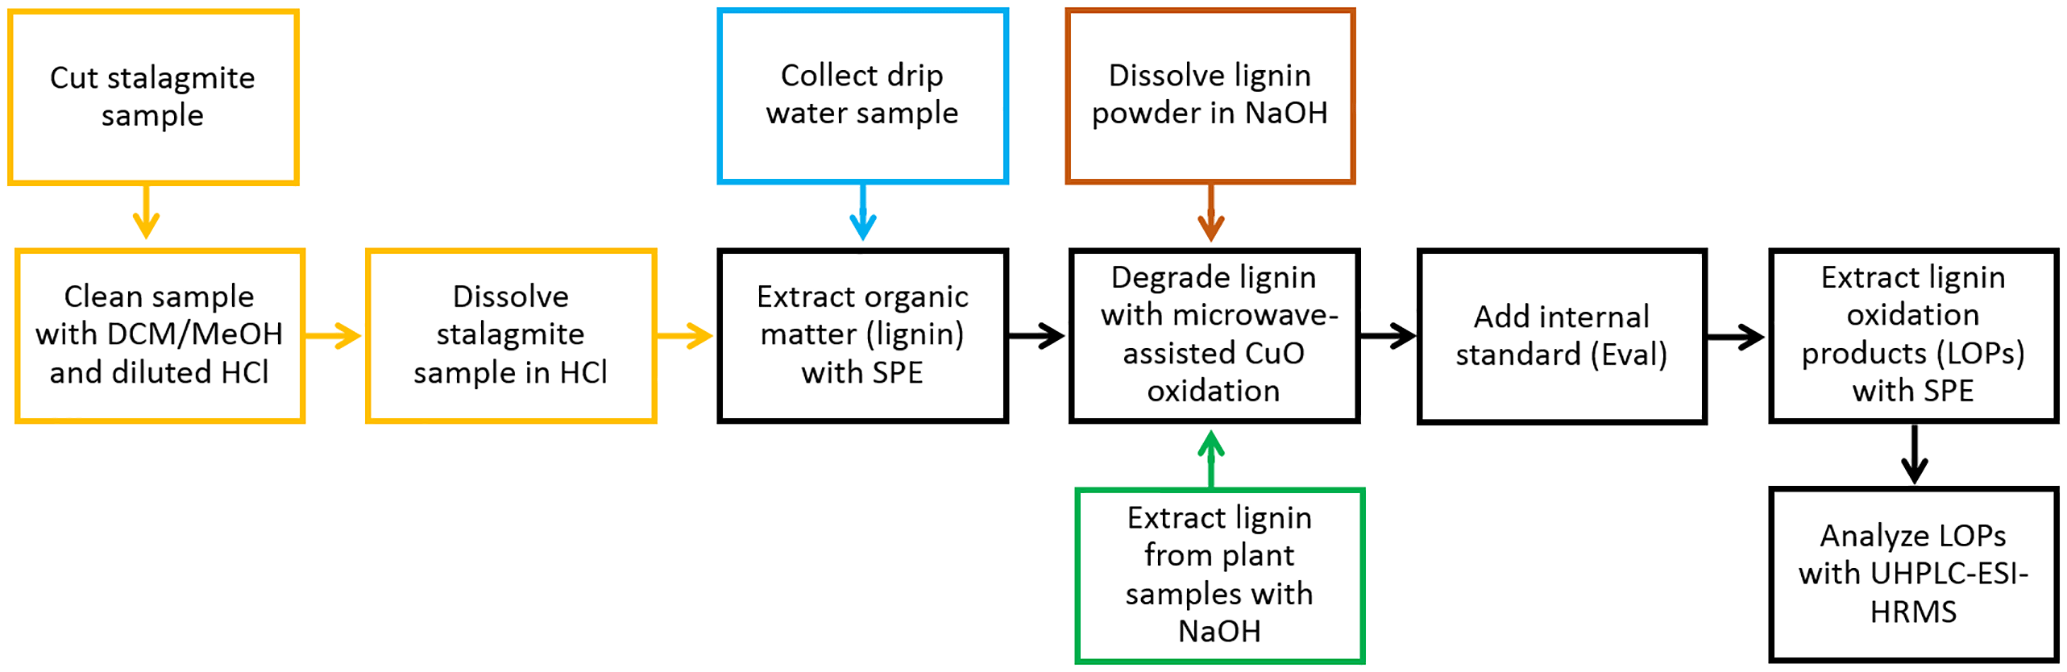 BG - Quantification of lignin oxidation products as